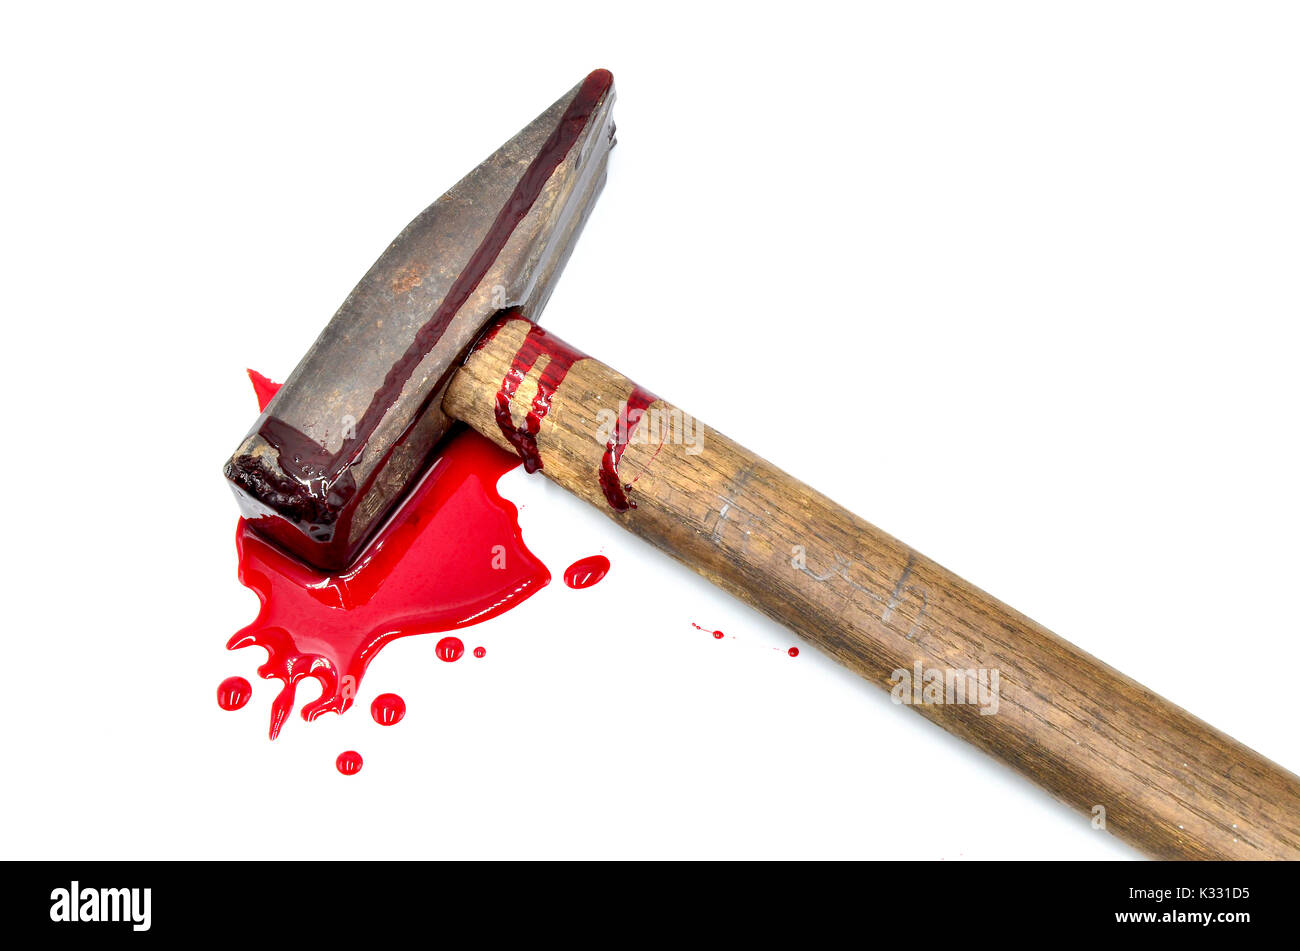 hammer with blood on white background - Stock Image